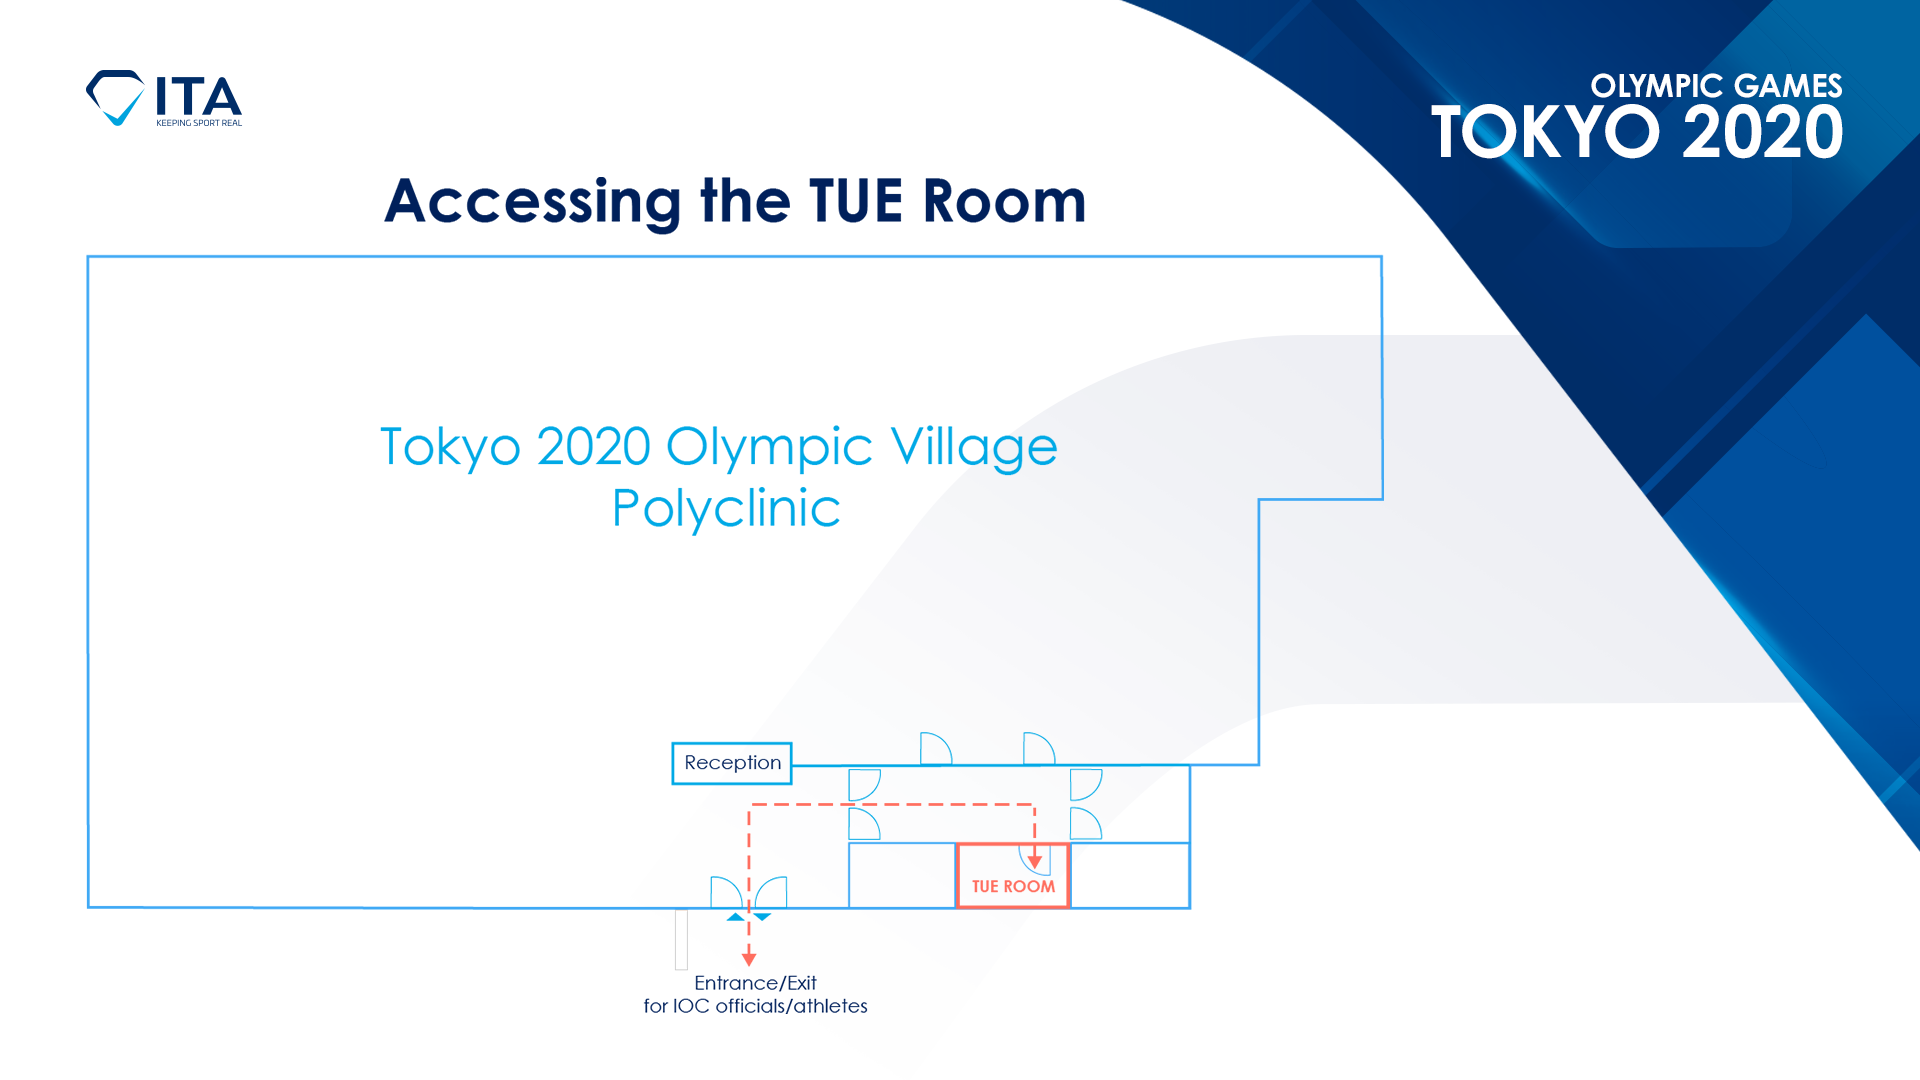 Therapeutic Use Exemptions - Olympic Games Tokyo 2020